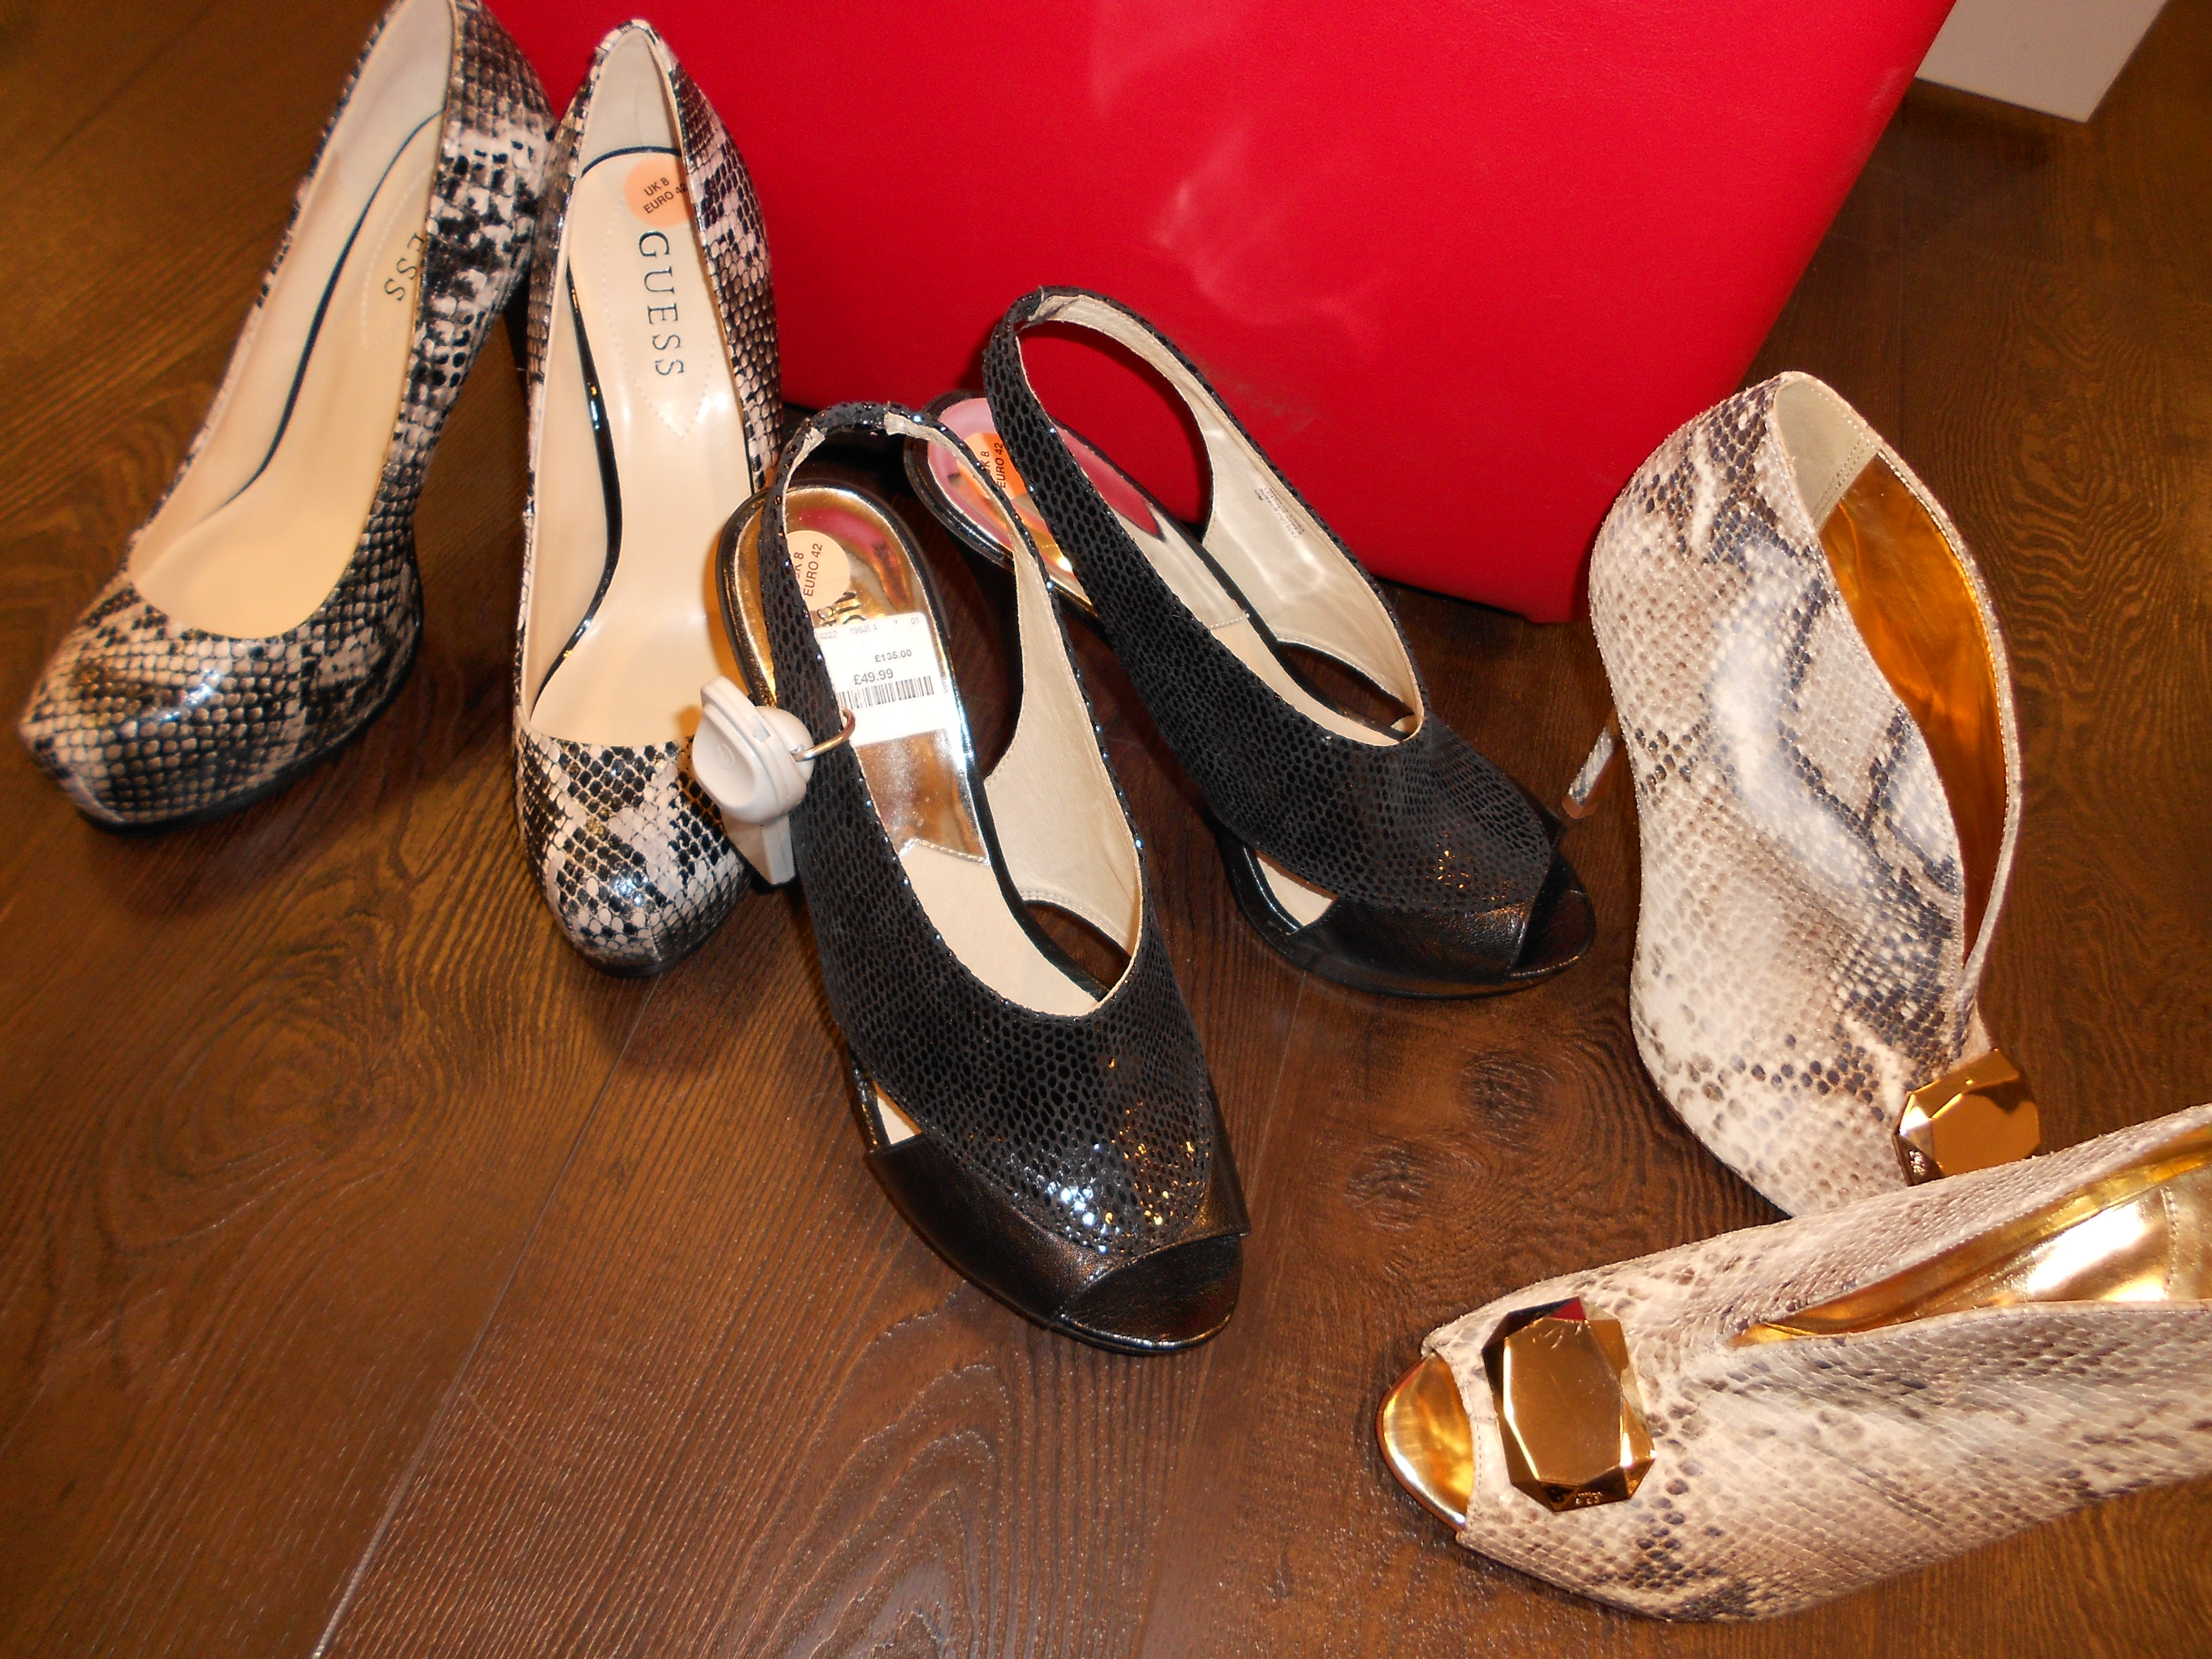 Revamped TK Maxx store: purchases and